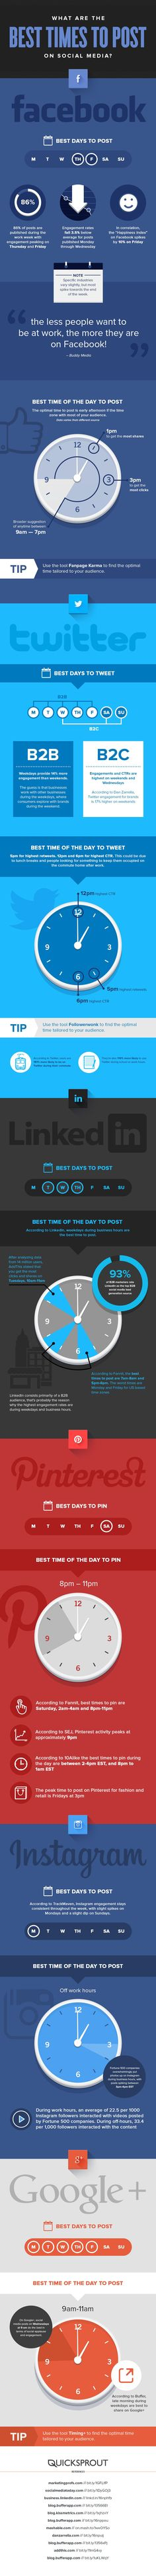 What Are The Best Times to Post on Social Media - #Infographic #SMM